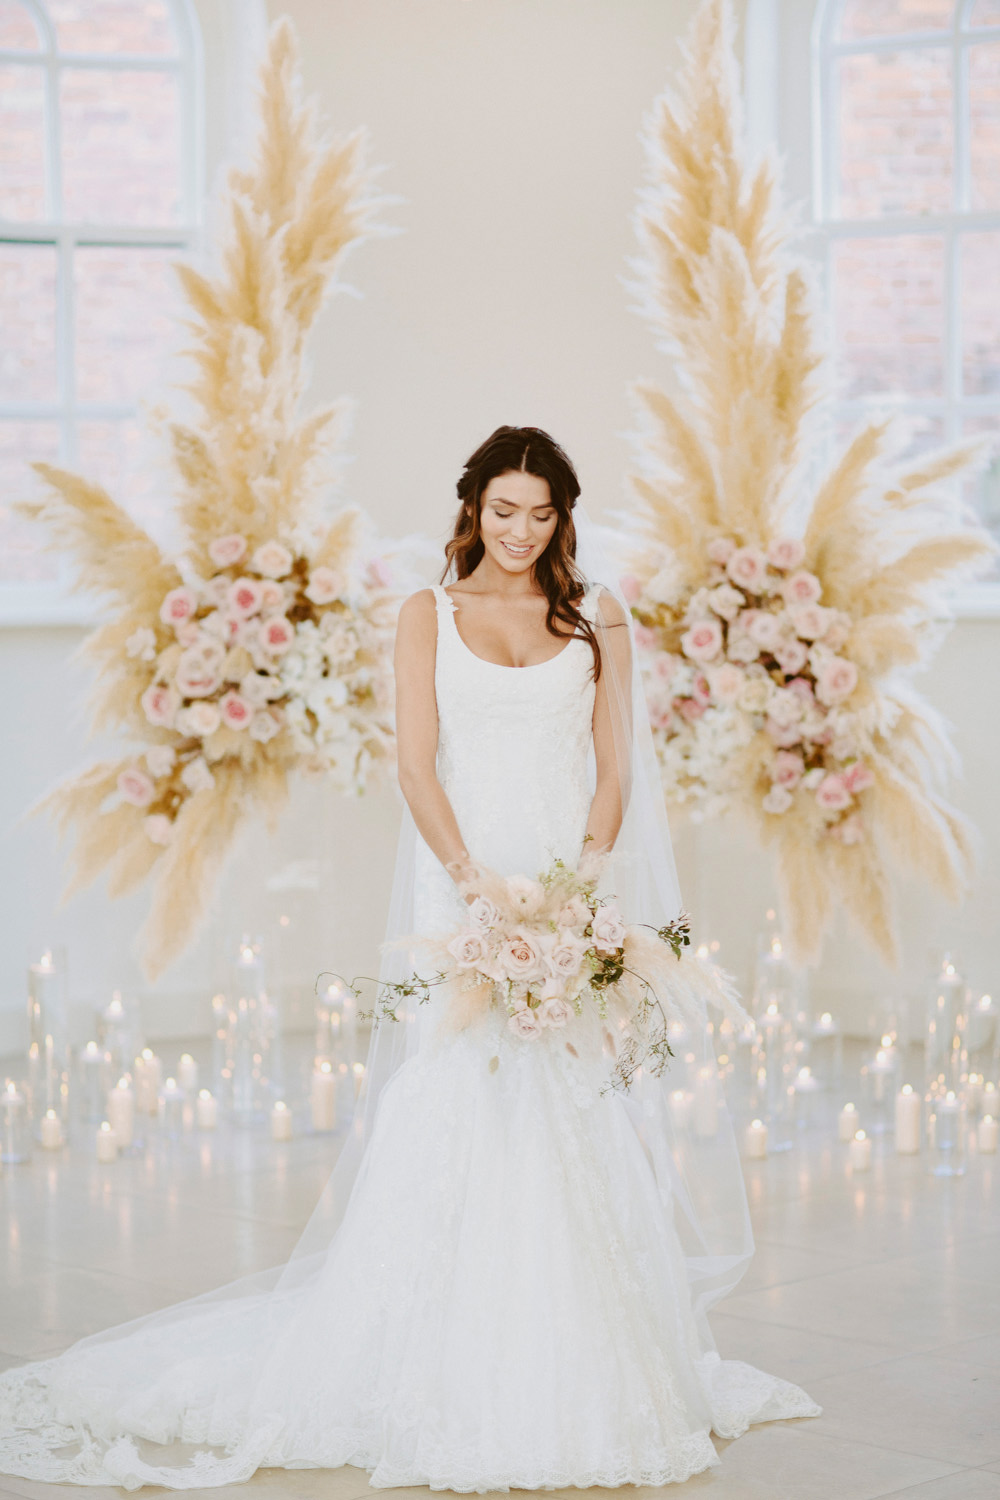 Zac Posen Bridalwear, Brand Shoot, Branding Shoot, Editorial Shoot, Pocketful of Dreams, Iscoyd Park, David Jenkins, Luxury Wedding, Understated Glamour wedding, Organic Wedding, Joseph Massie Flowers, Blush Pink Wedding, Modern Wedding, bridal musings